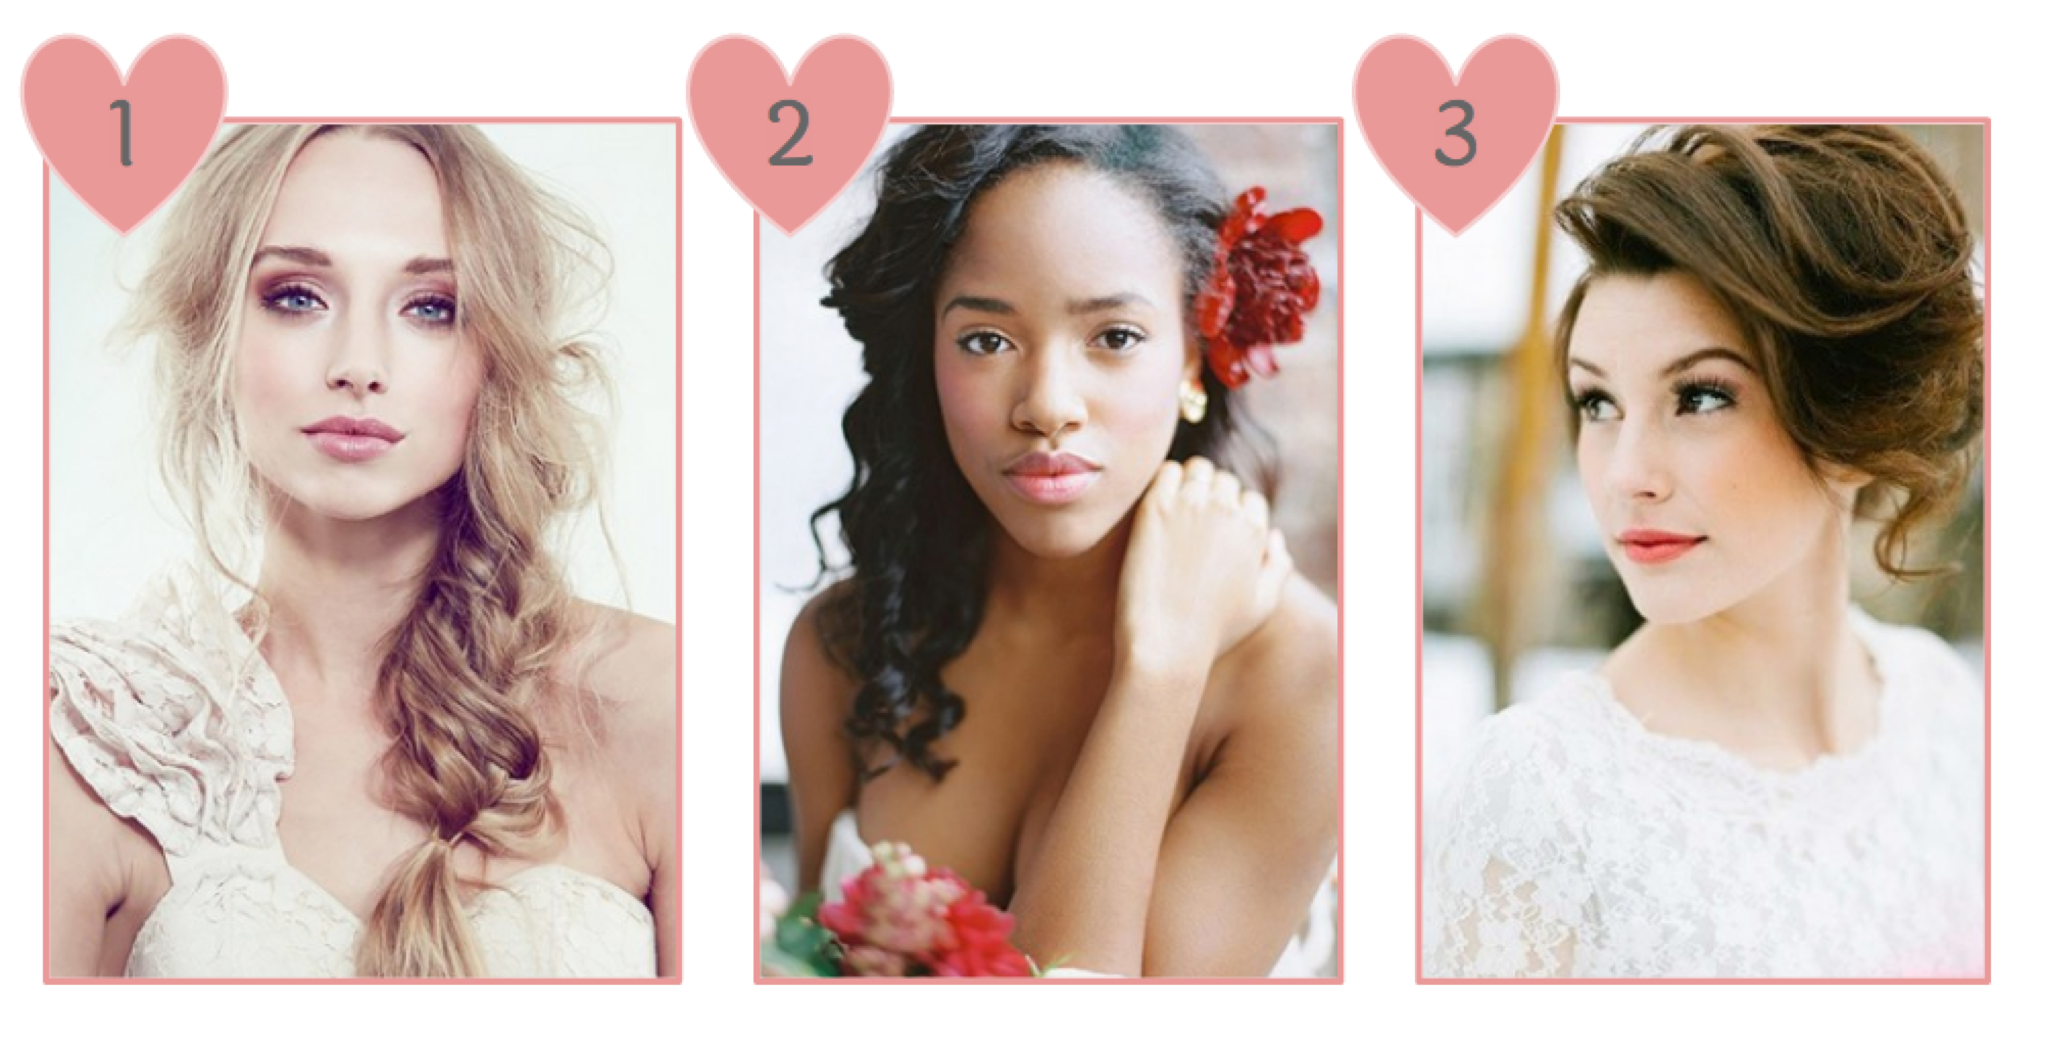 Stylisted - Bridal Makeup Inspiration 1